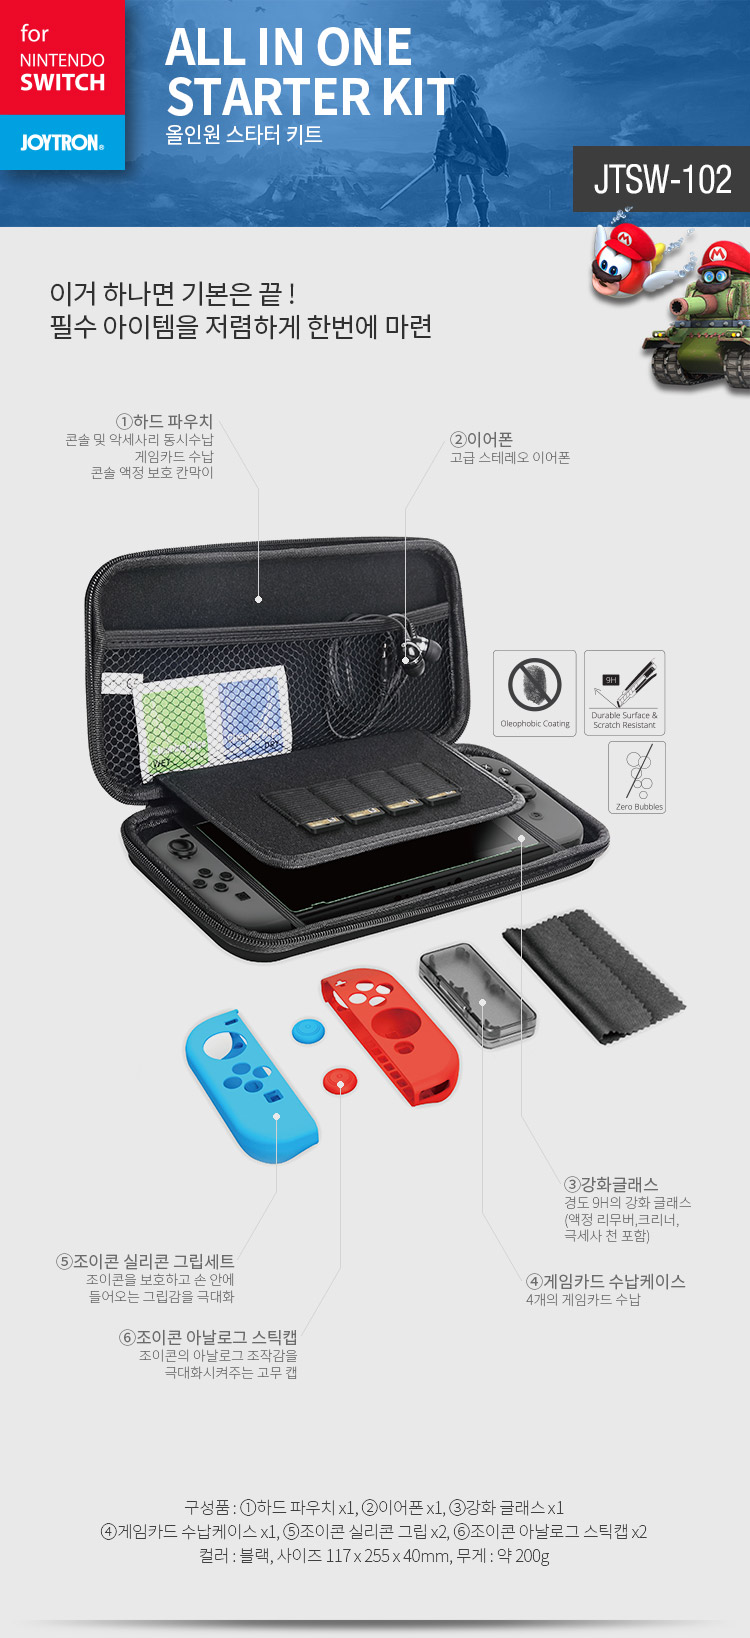 Nintendo switch exclusive accessory collection - 11STREET